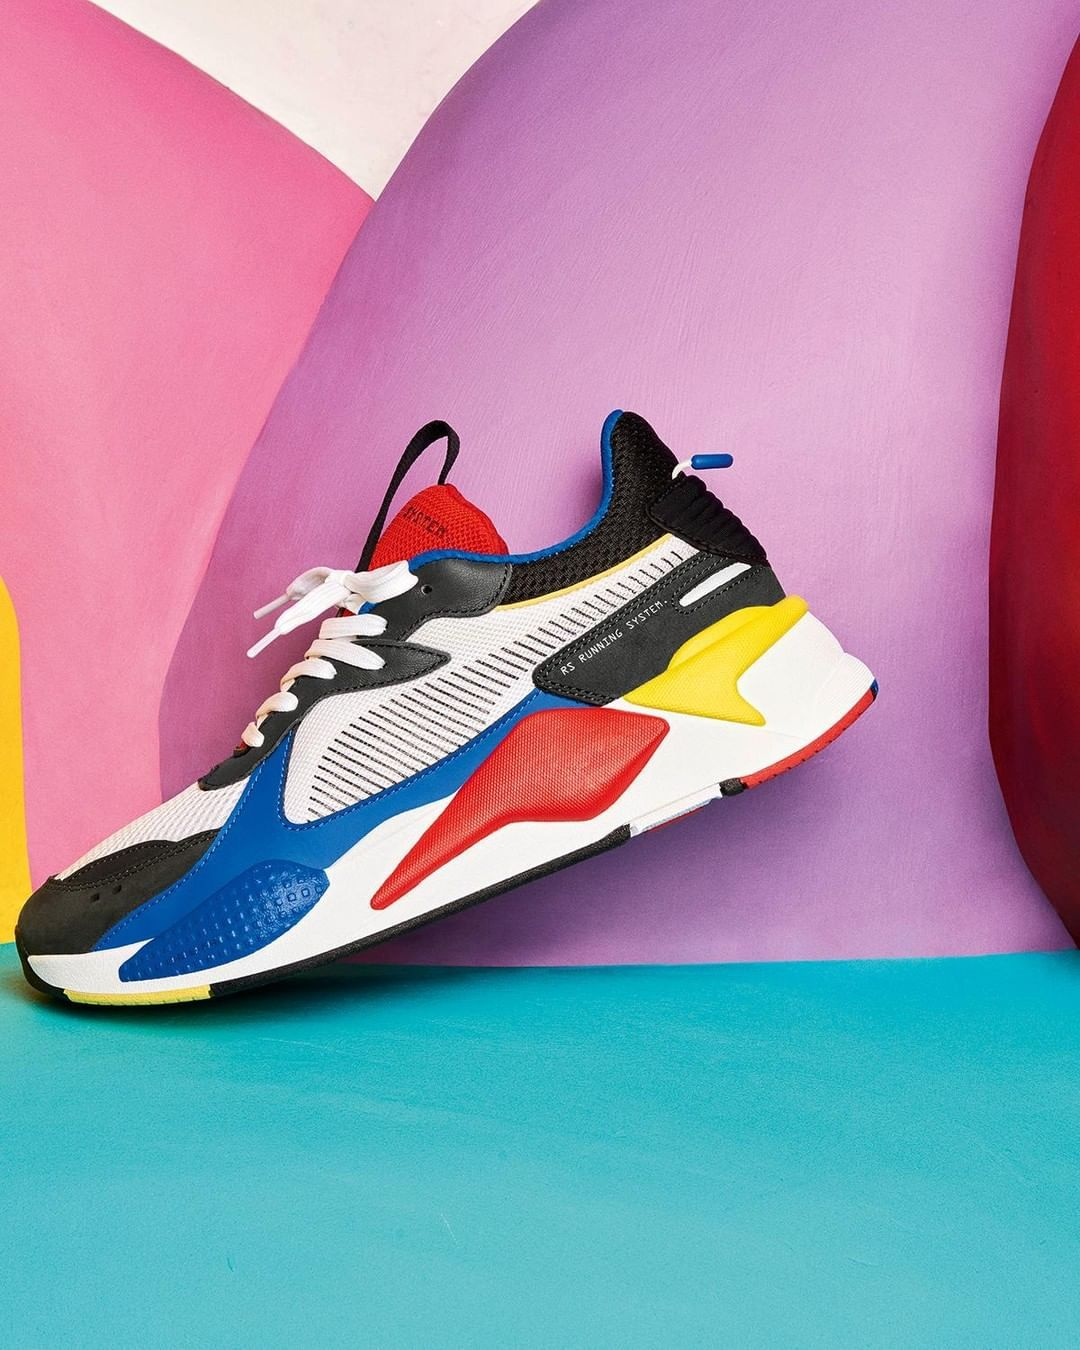 Everyone loves toys. #Puma RS-X Toys